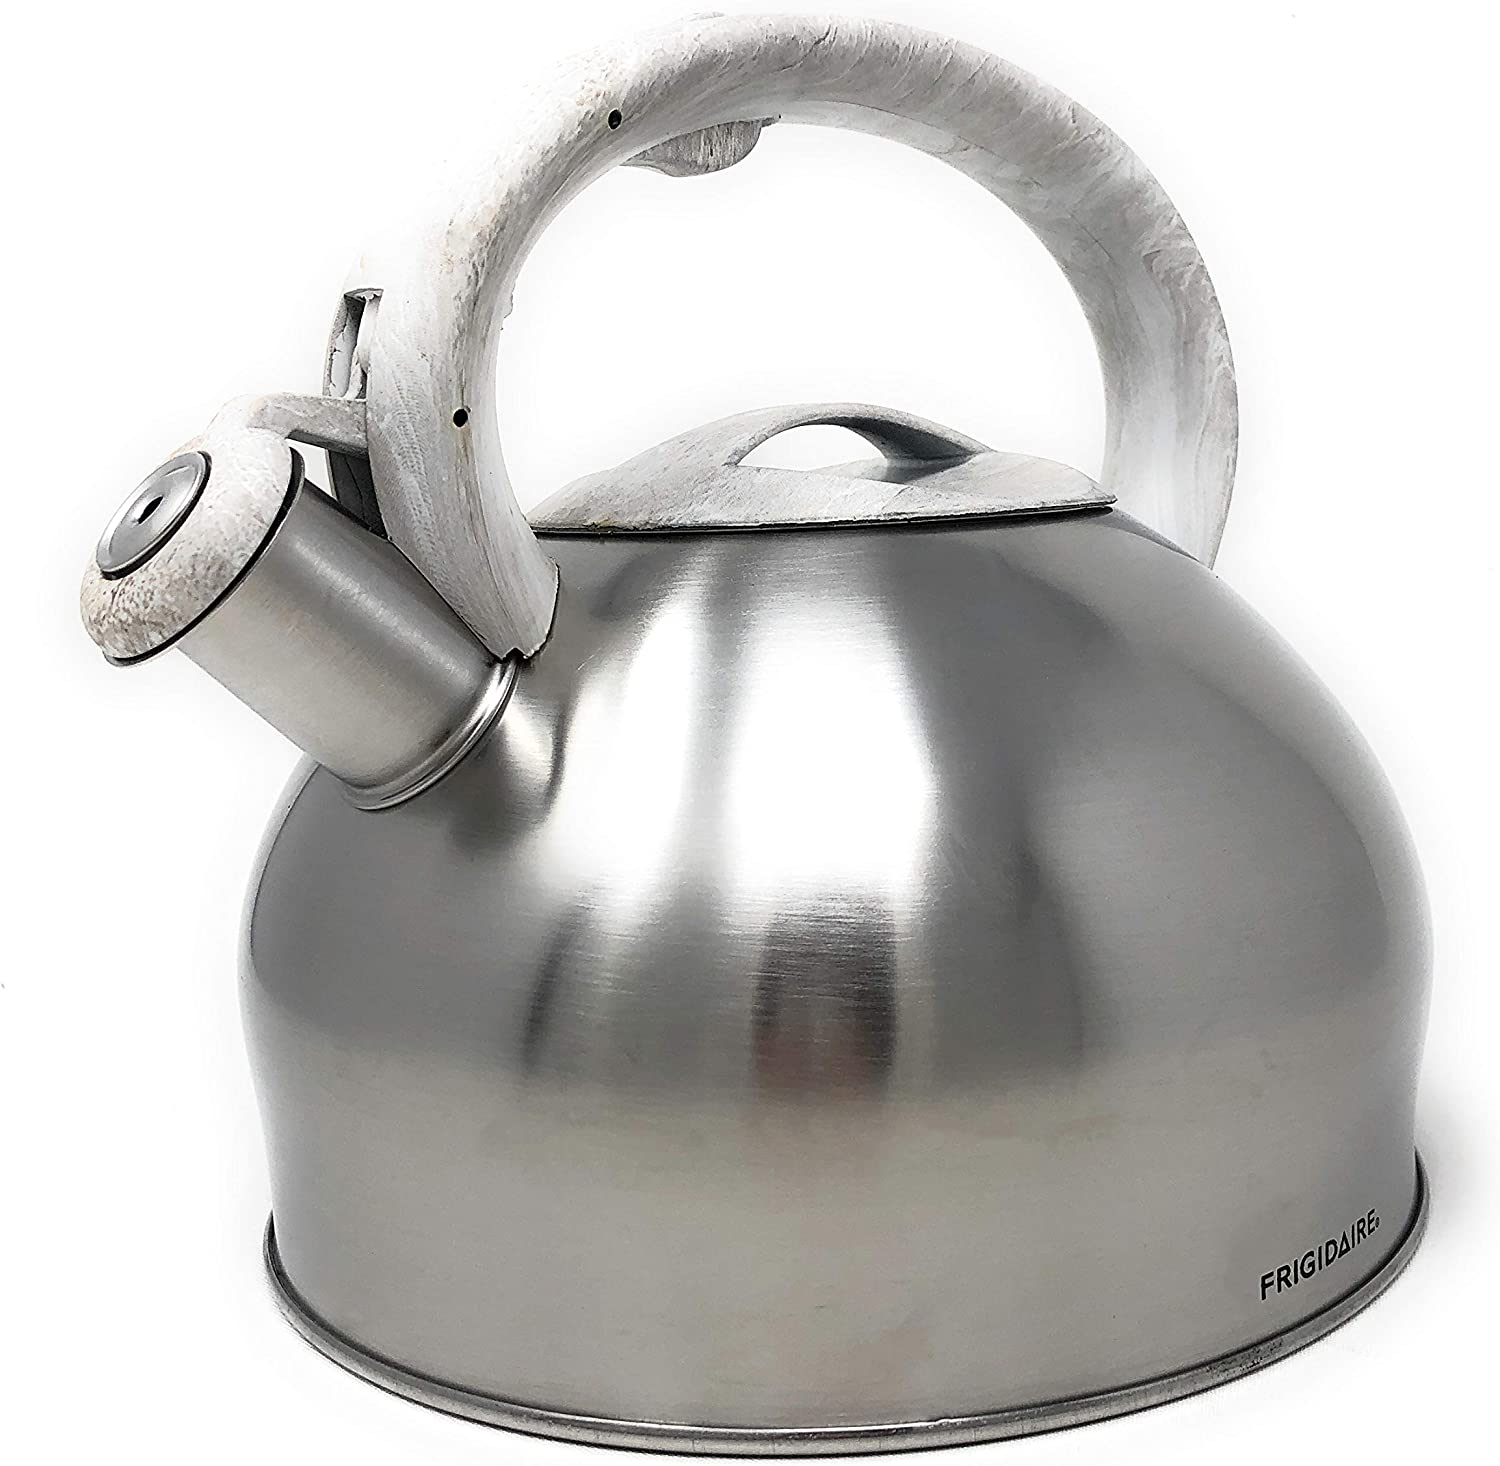 Match your Kitchen Frigidaire Stainless Steel 3.2 QT Stovetop Tea Kettle Black Marble